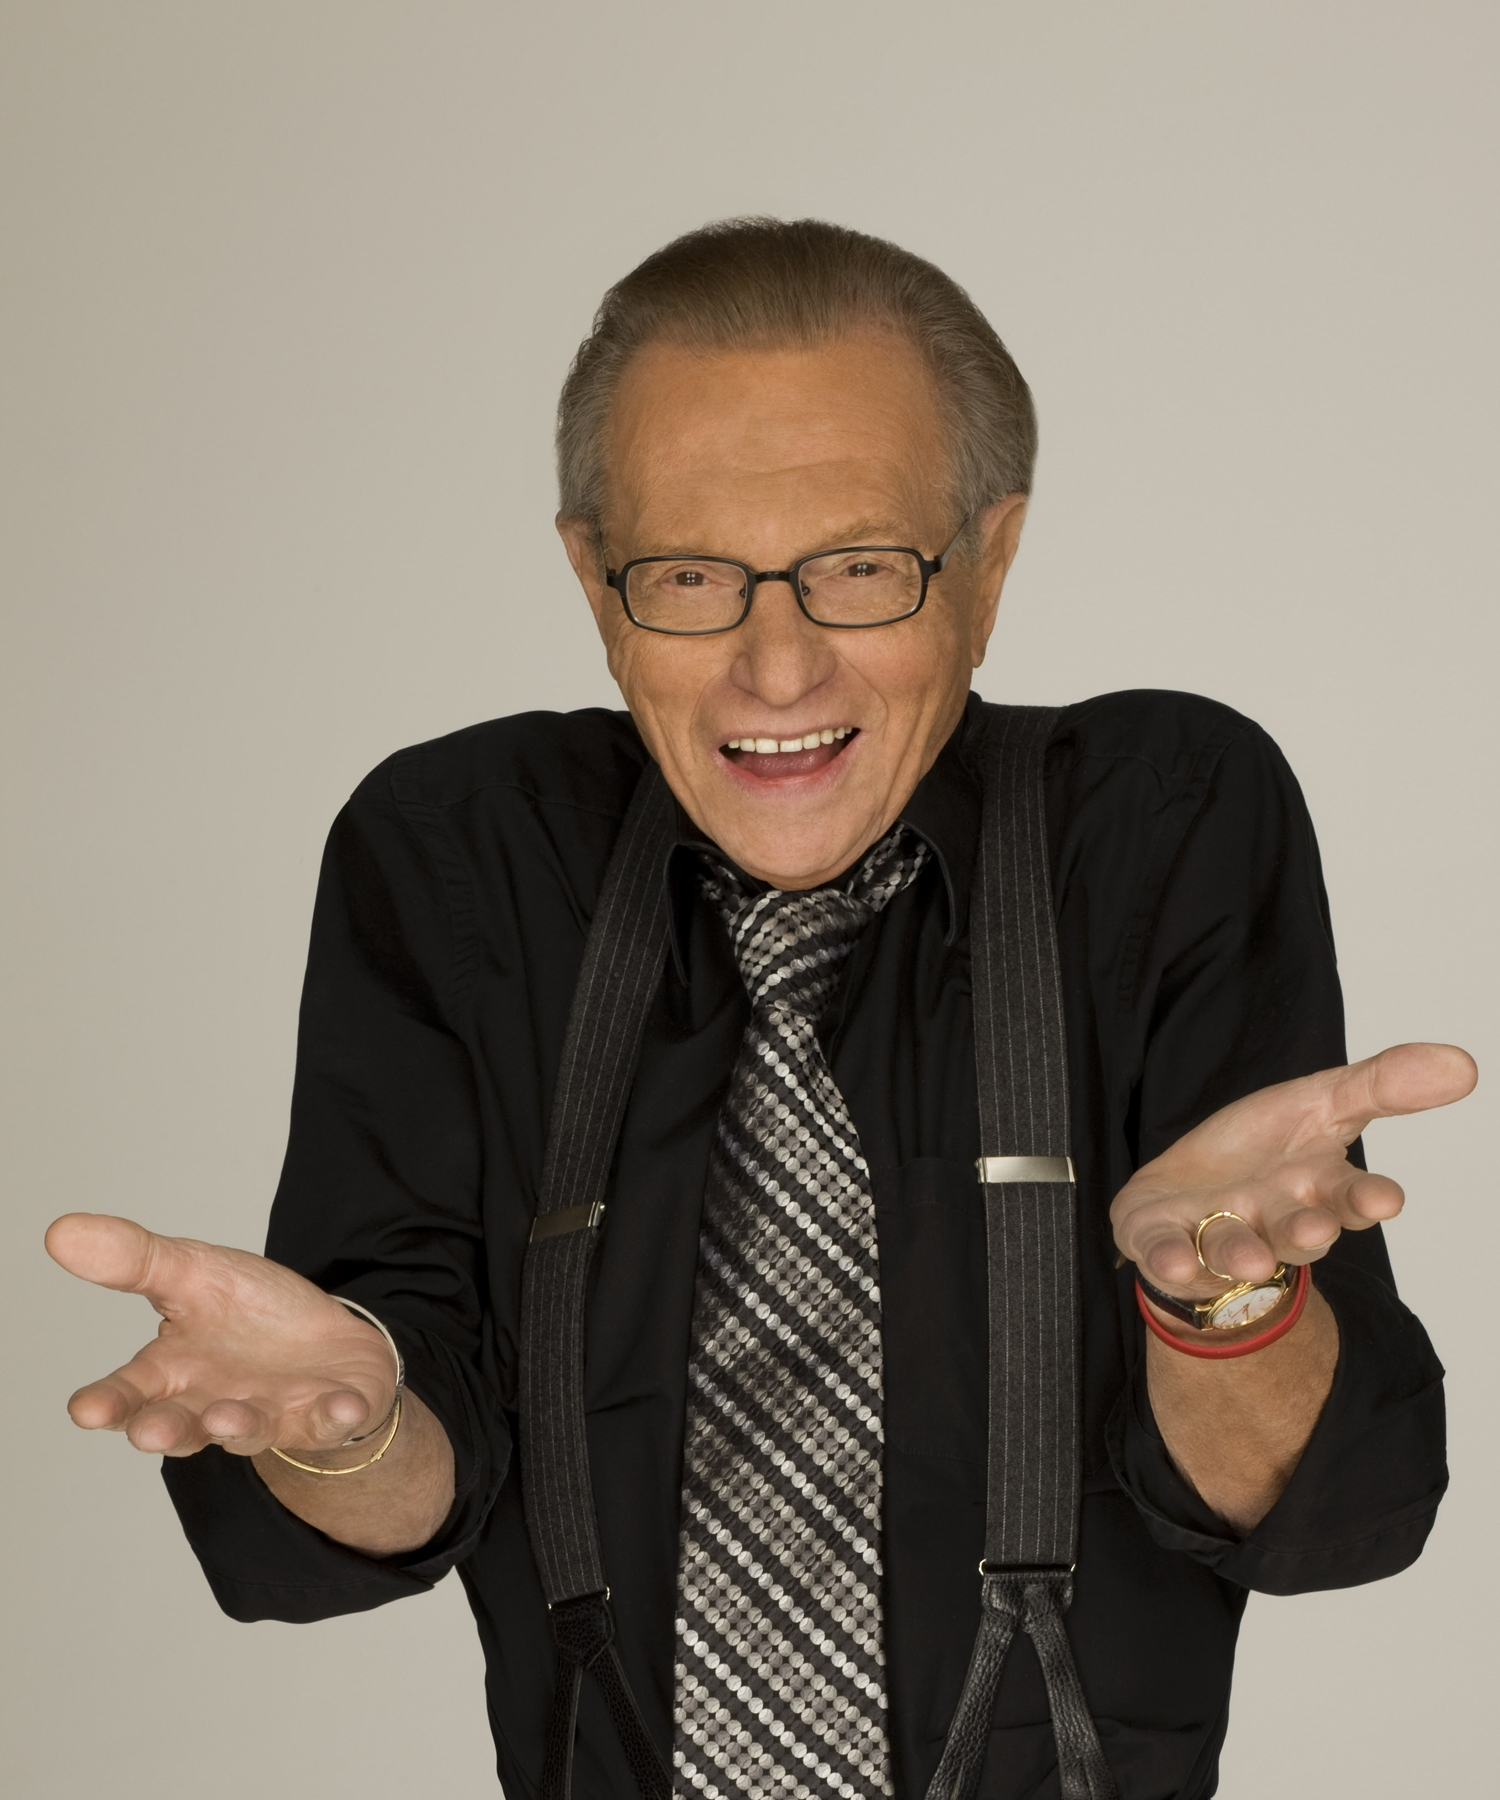 Watch Larry King the iconic host of Larry King Live as he interviews athletes celebrities and musicians only on Larry King Now